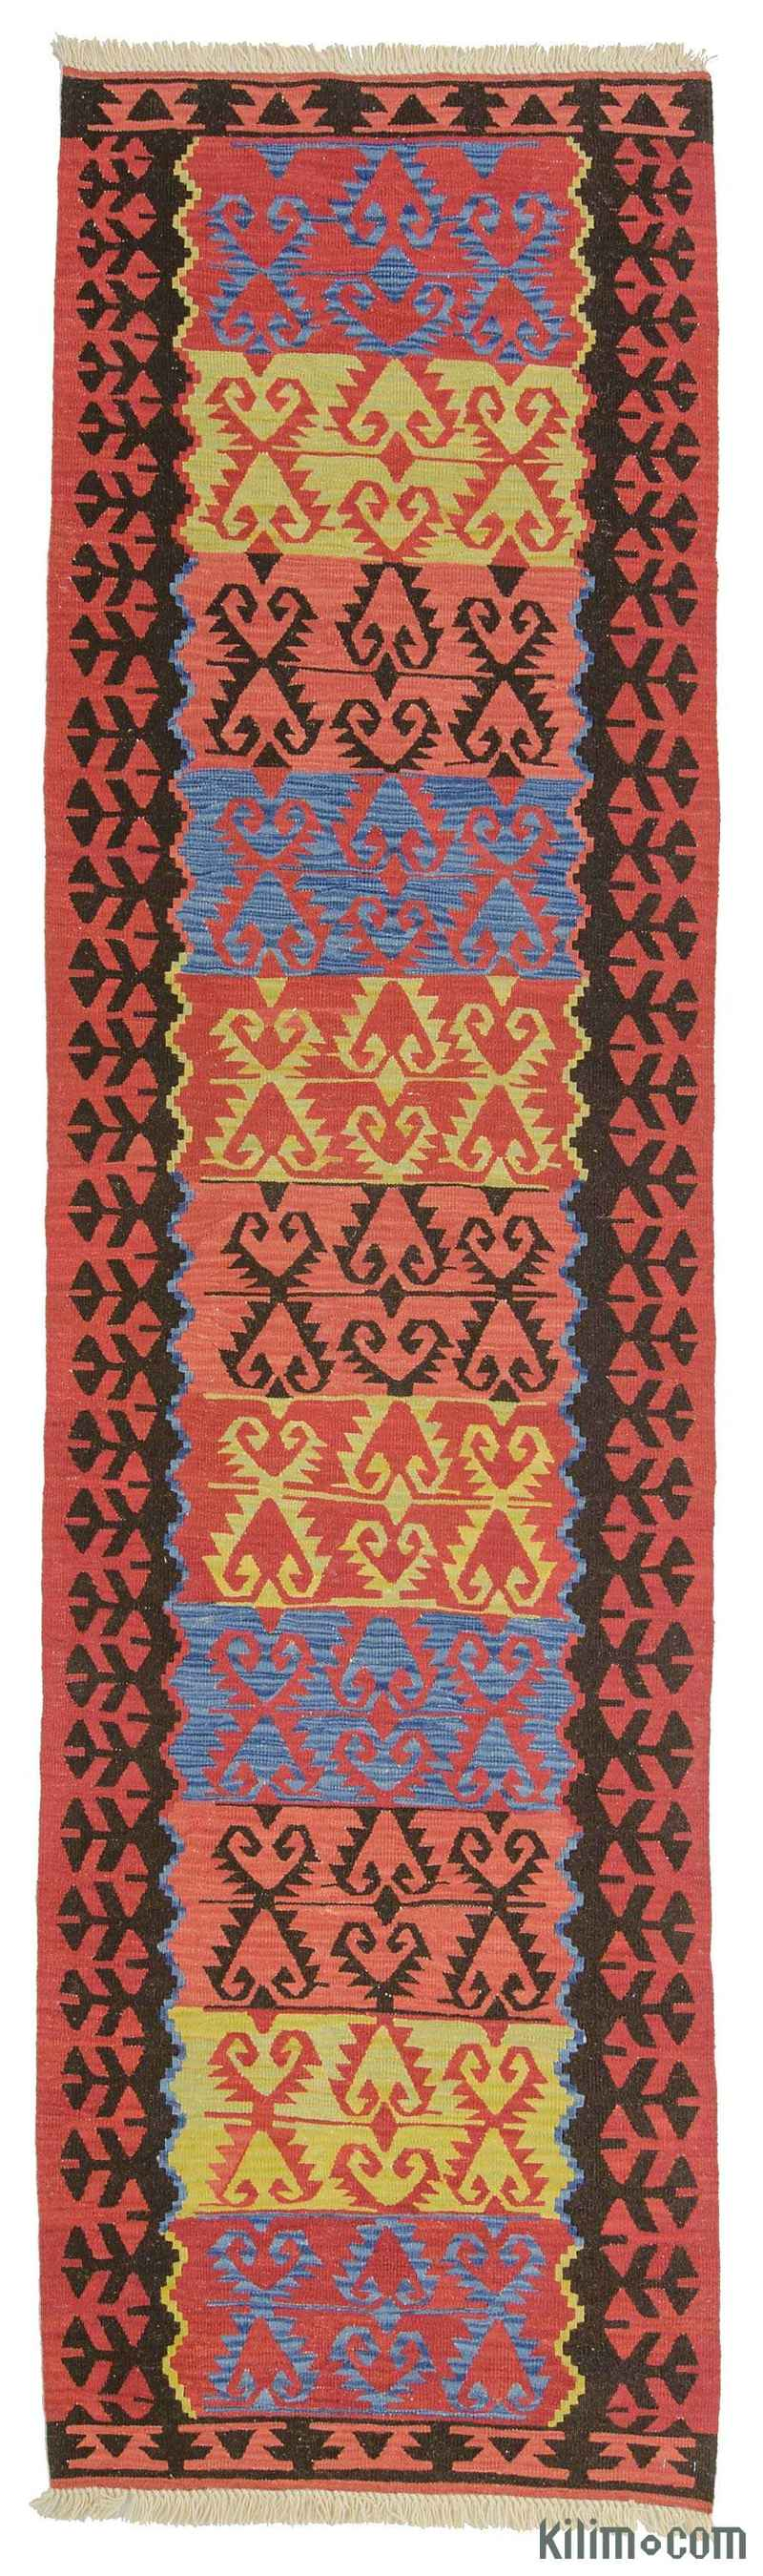 k0010798 red new turkish kilim runner rug. Black Bedroom Furniture Sets. Home Design Ideas